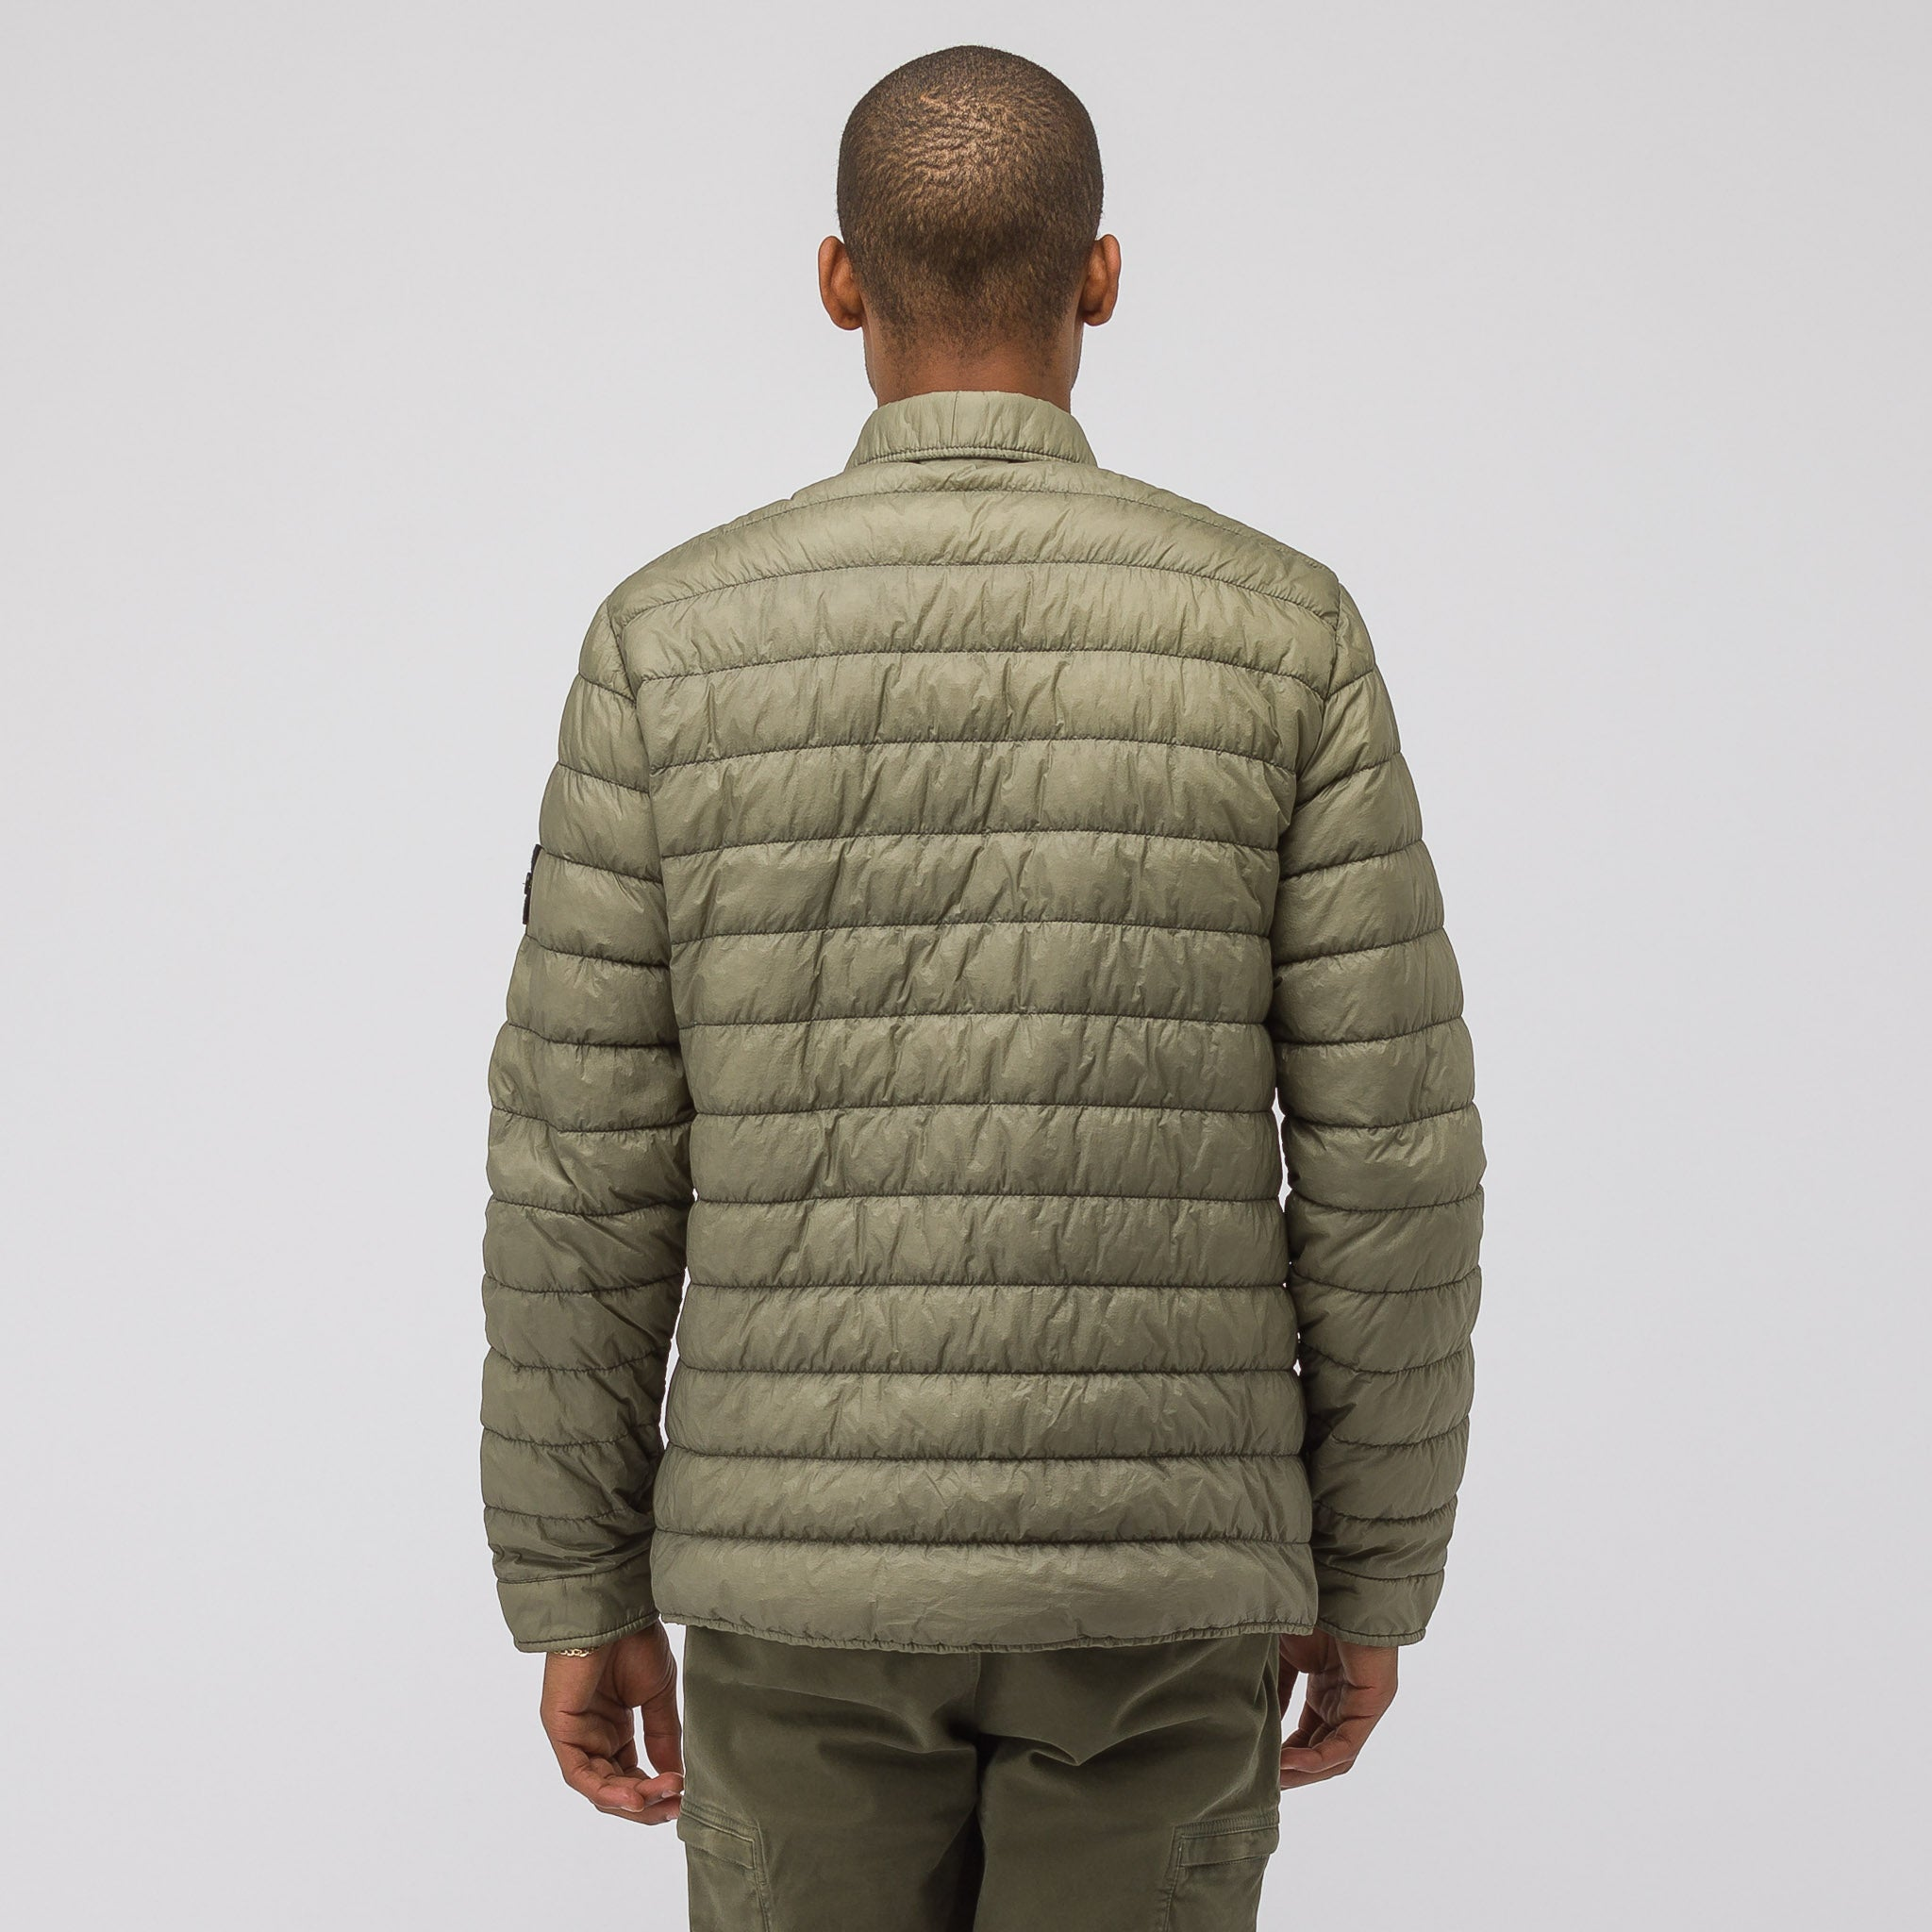 Q0324 Garment Dyed Micro Down Packable Jacket in Olive